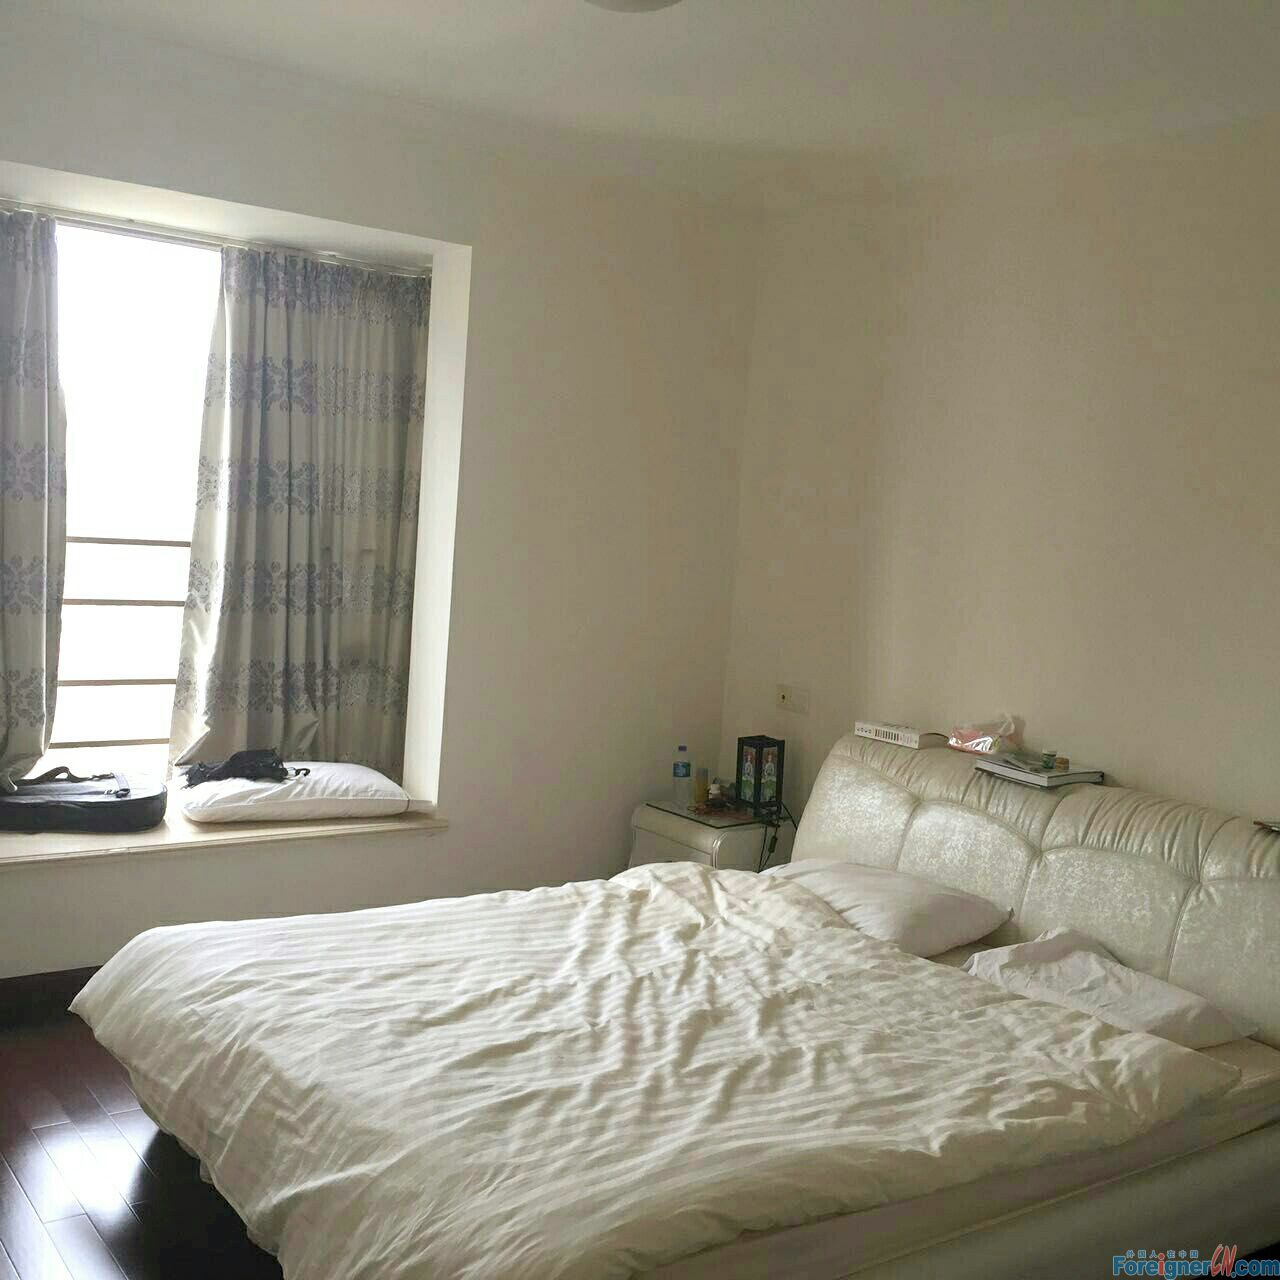 29Floor + 3Br +1 huge balcony facing to Zhujiang park +Liede MTR downstairs